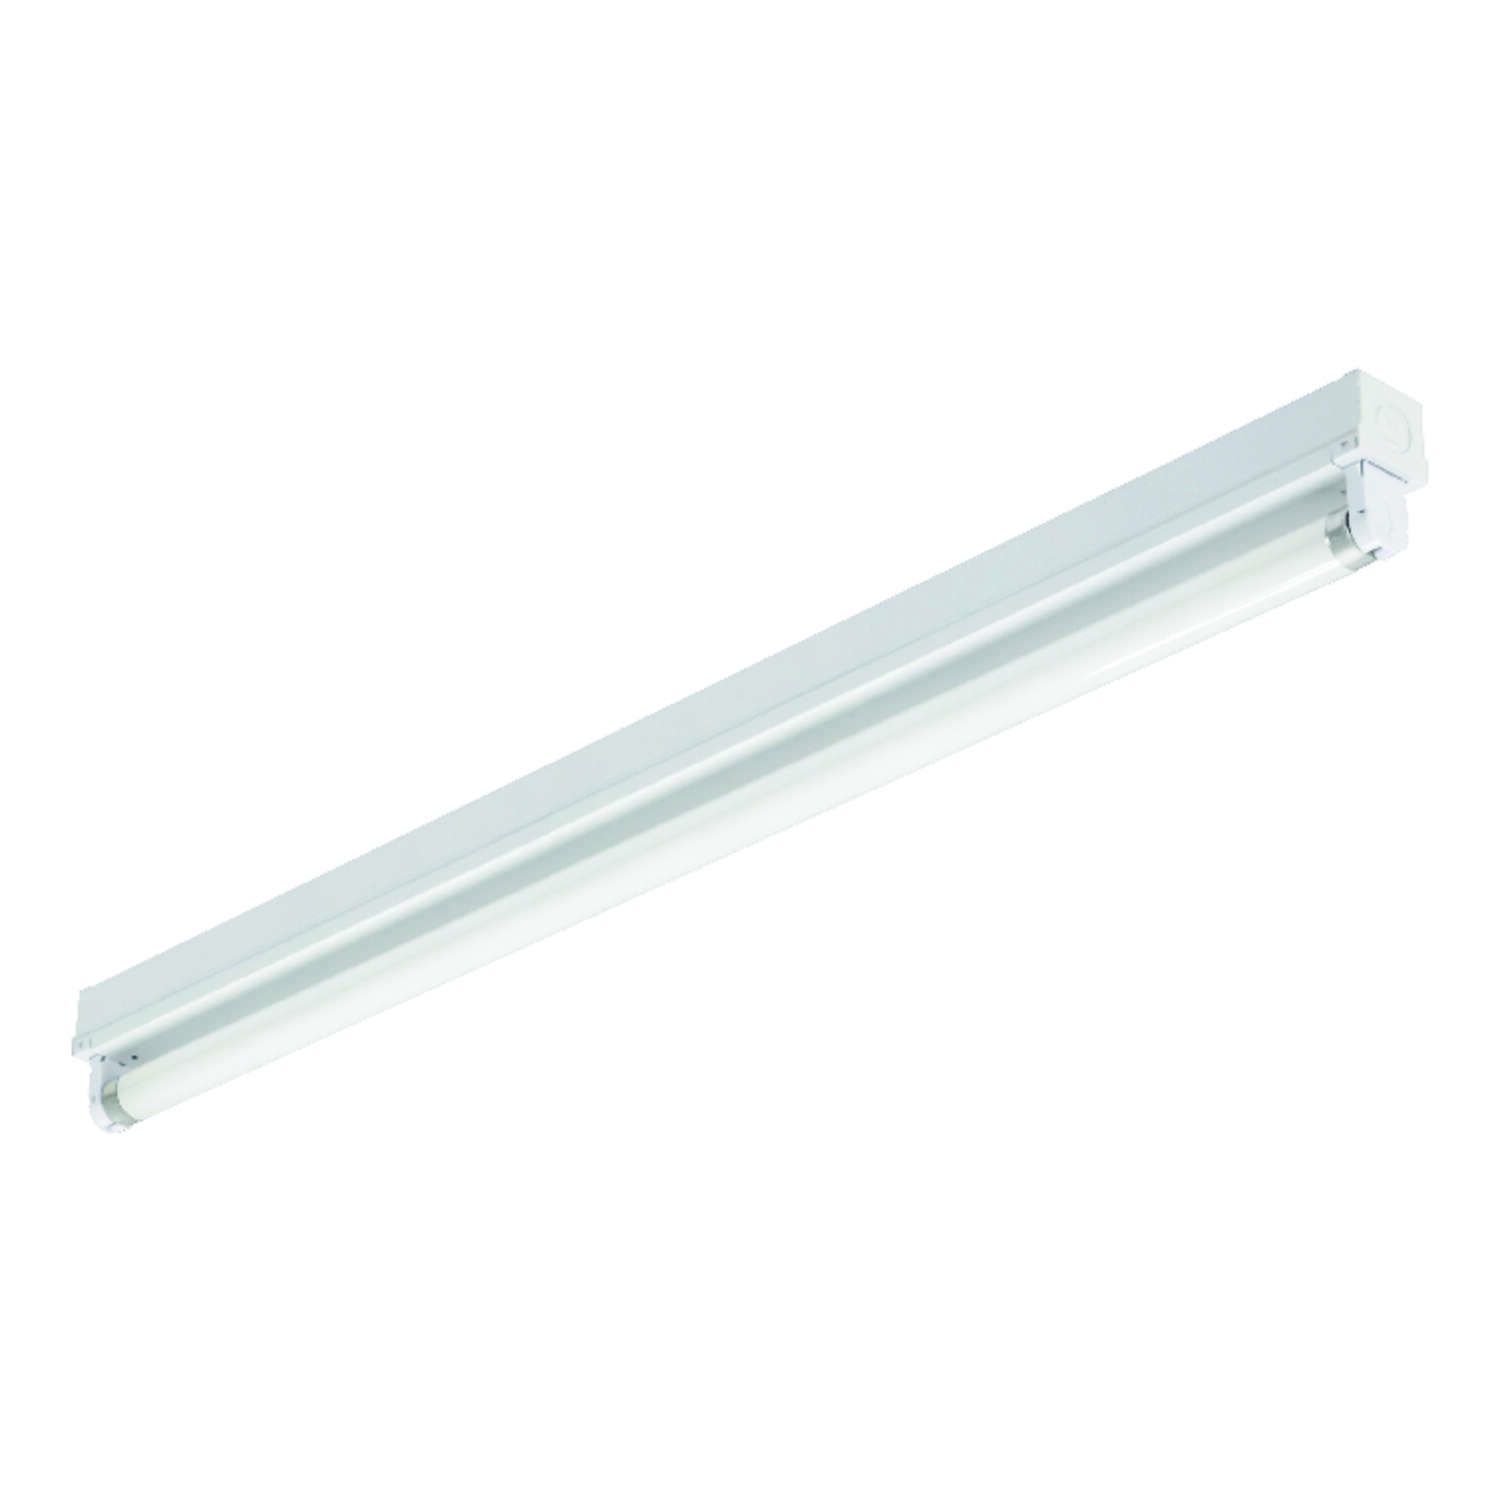 Lithonia Lighting  36.375 in. L White  Hardwired  Fluorescent  Strip Light